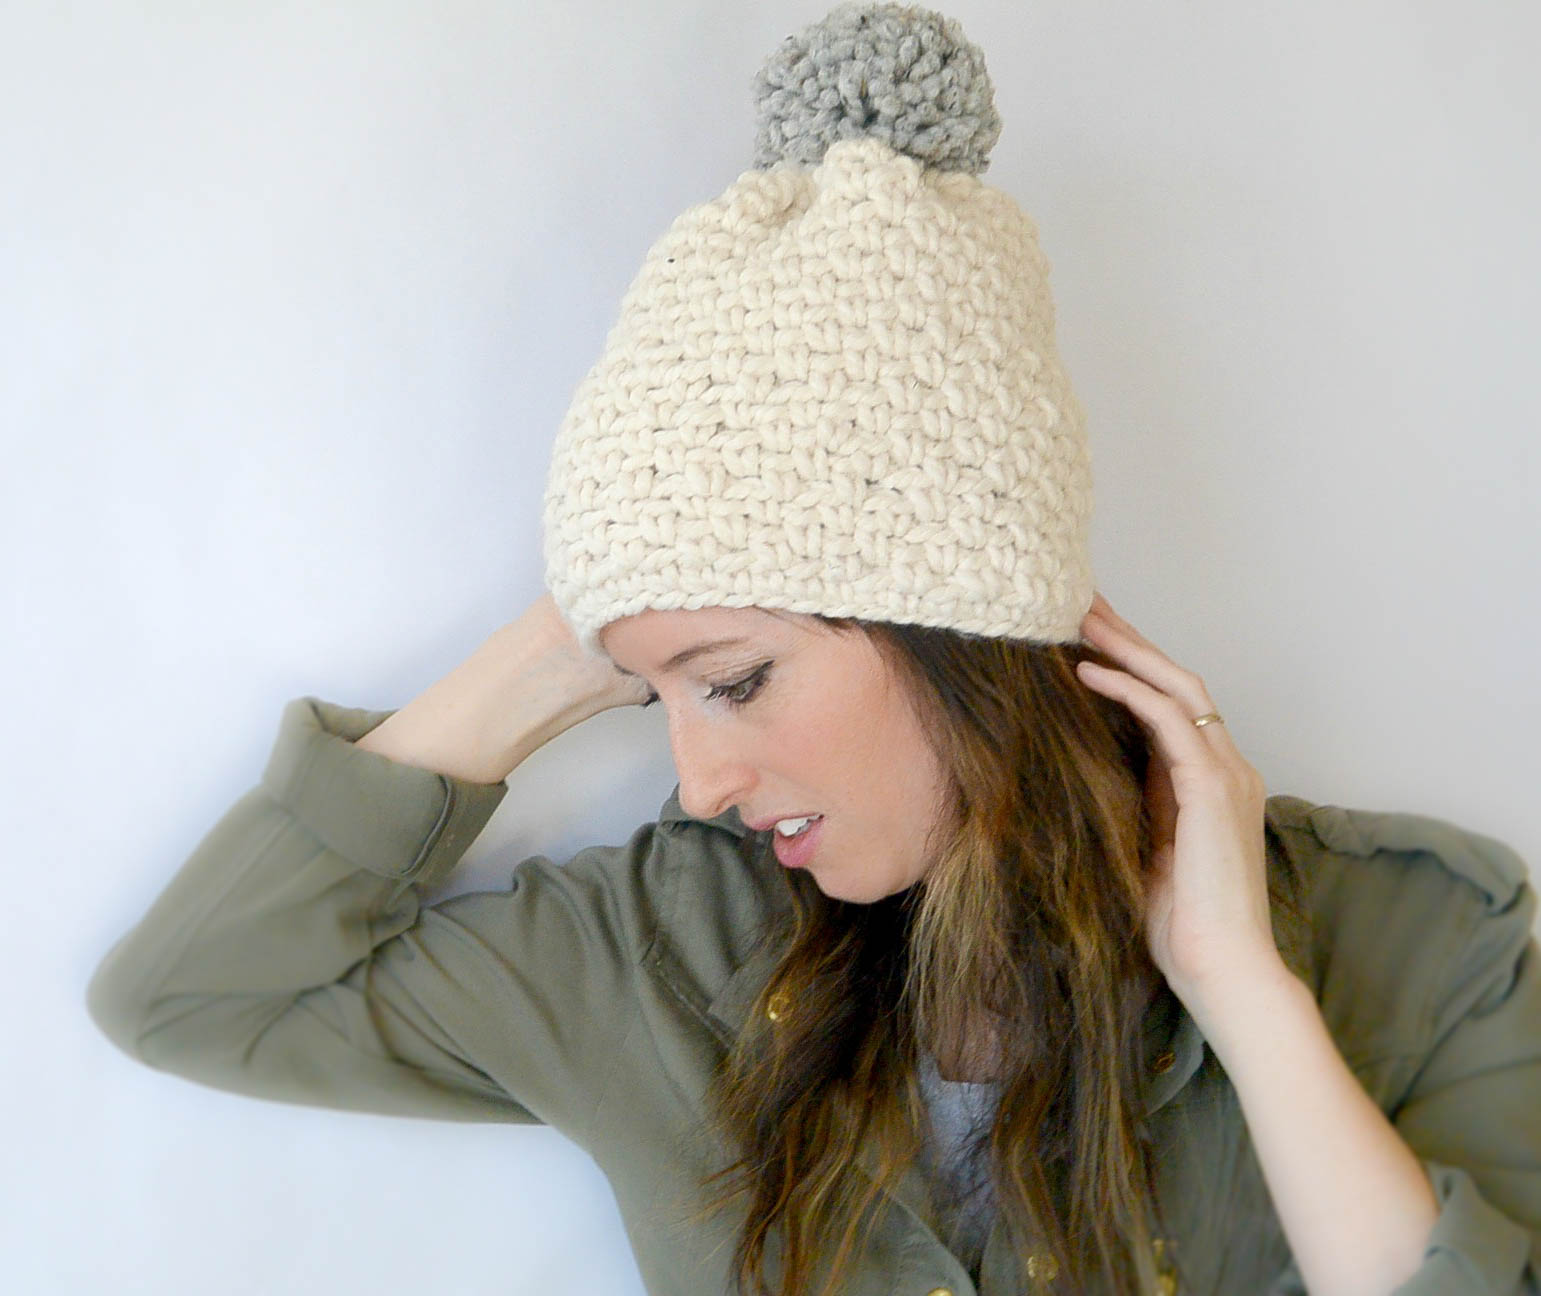 Crochet Hat Pattern Super Bulky Yarn : Free Crochet Patterns ? Mama In A Stitch